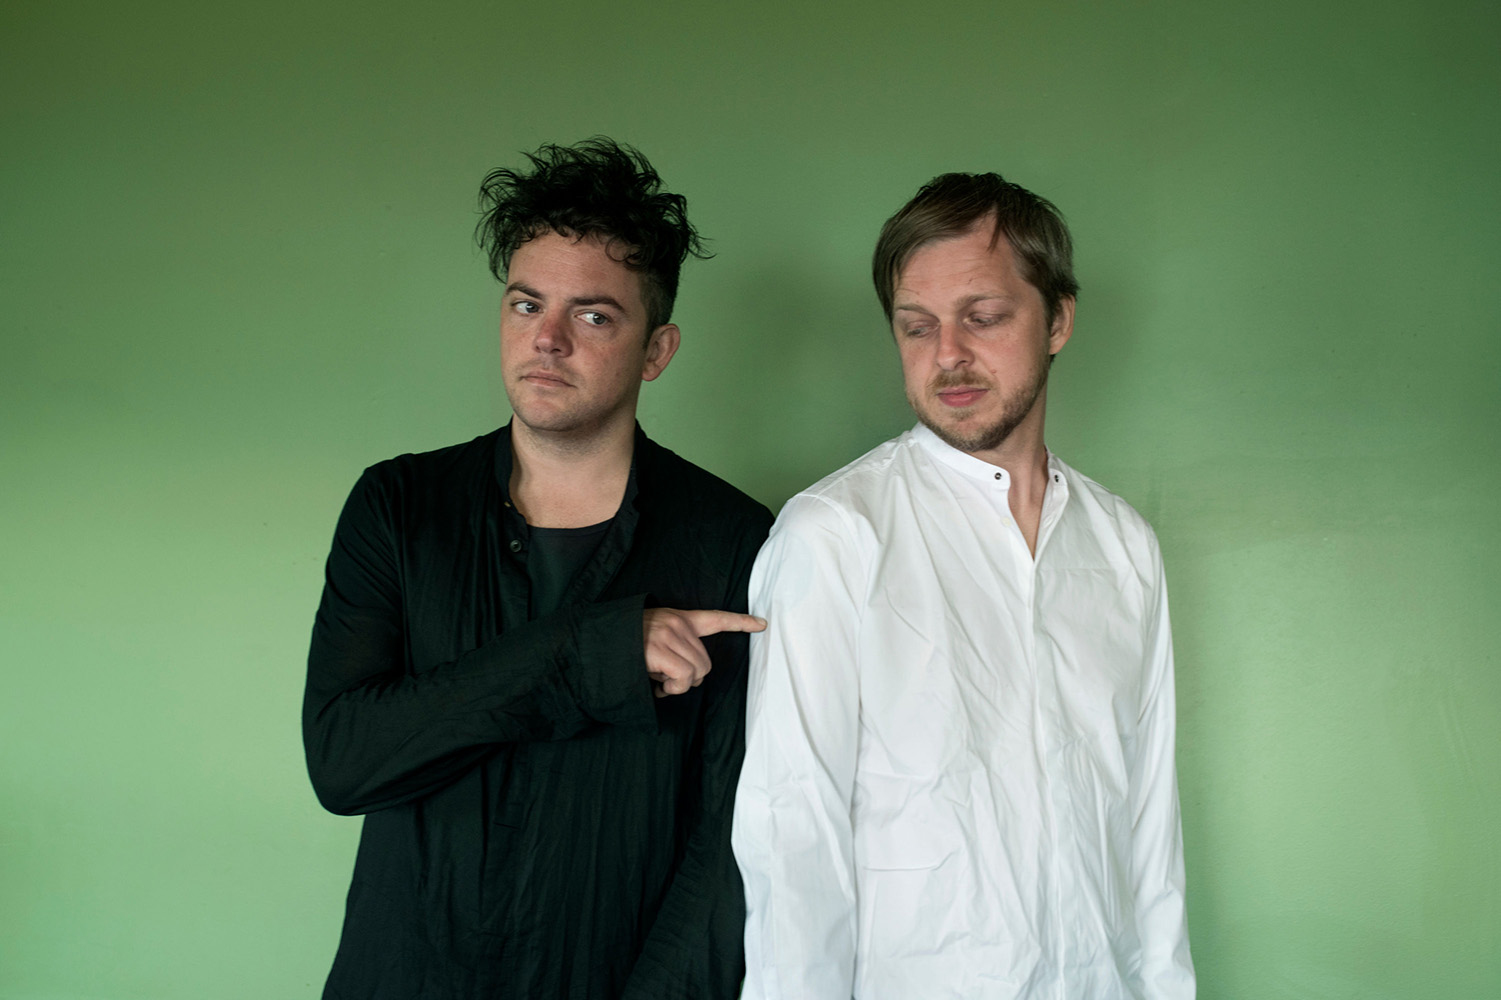 Teitur + Nico Muhly's opus 'Confessions' is heading to SPOT Festival!